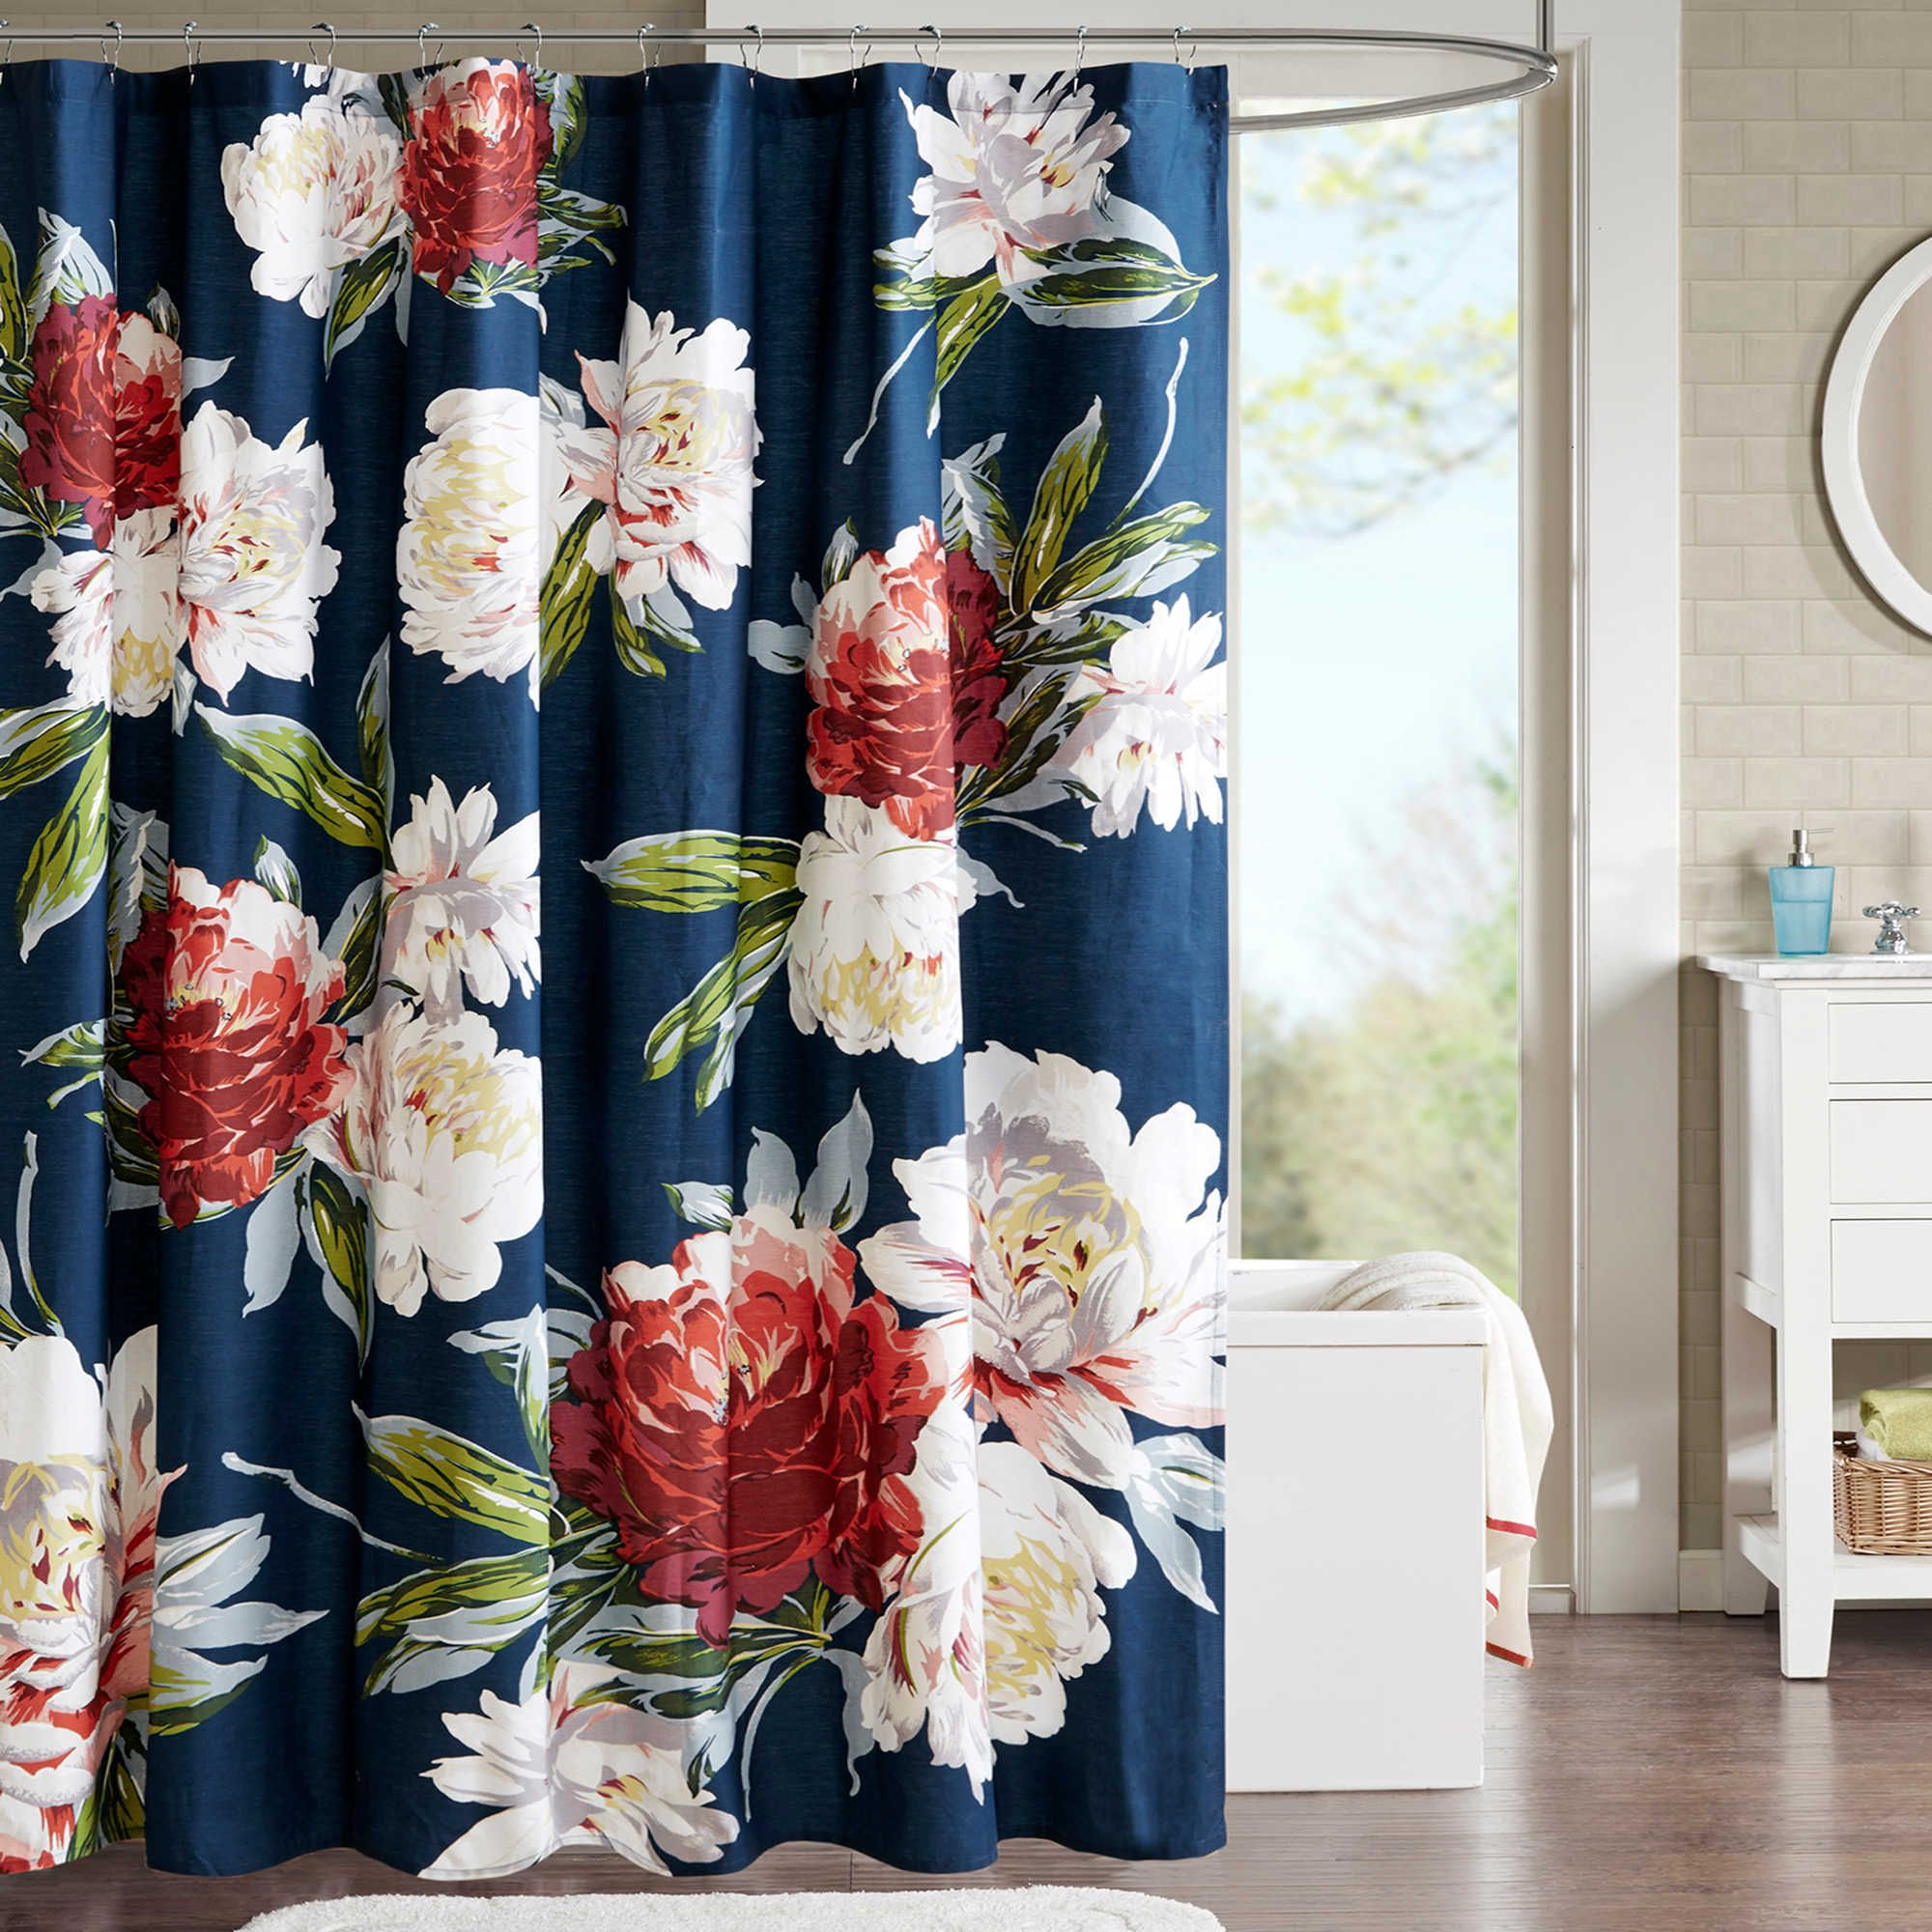 Love This Navy Blue Floral Shower Curtain For Our Guest Bathroom It Was Out Of Stock Onli Colorful Shower Curtain Fancy Shower Curtains Pretty Shower Curtains